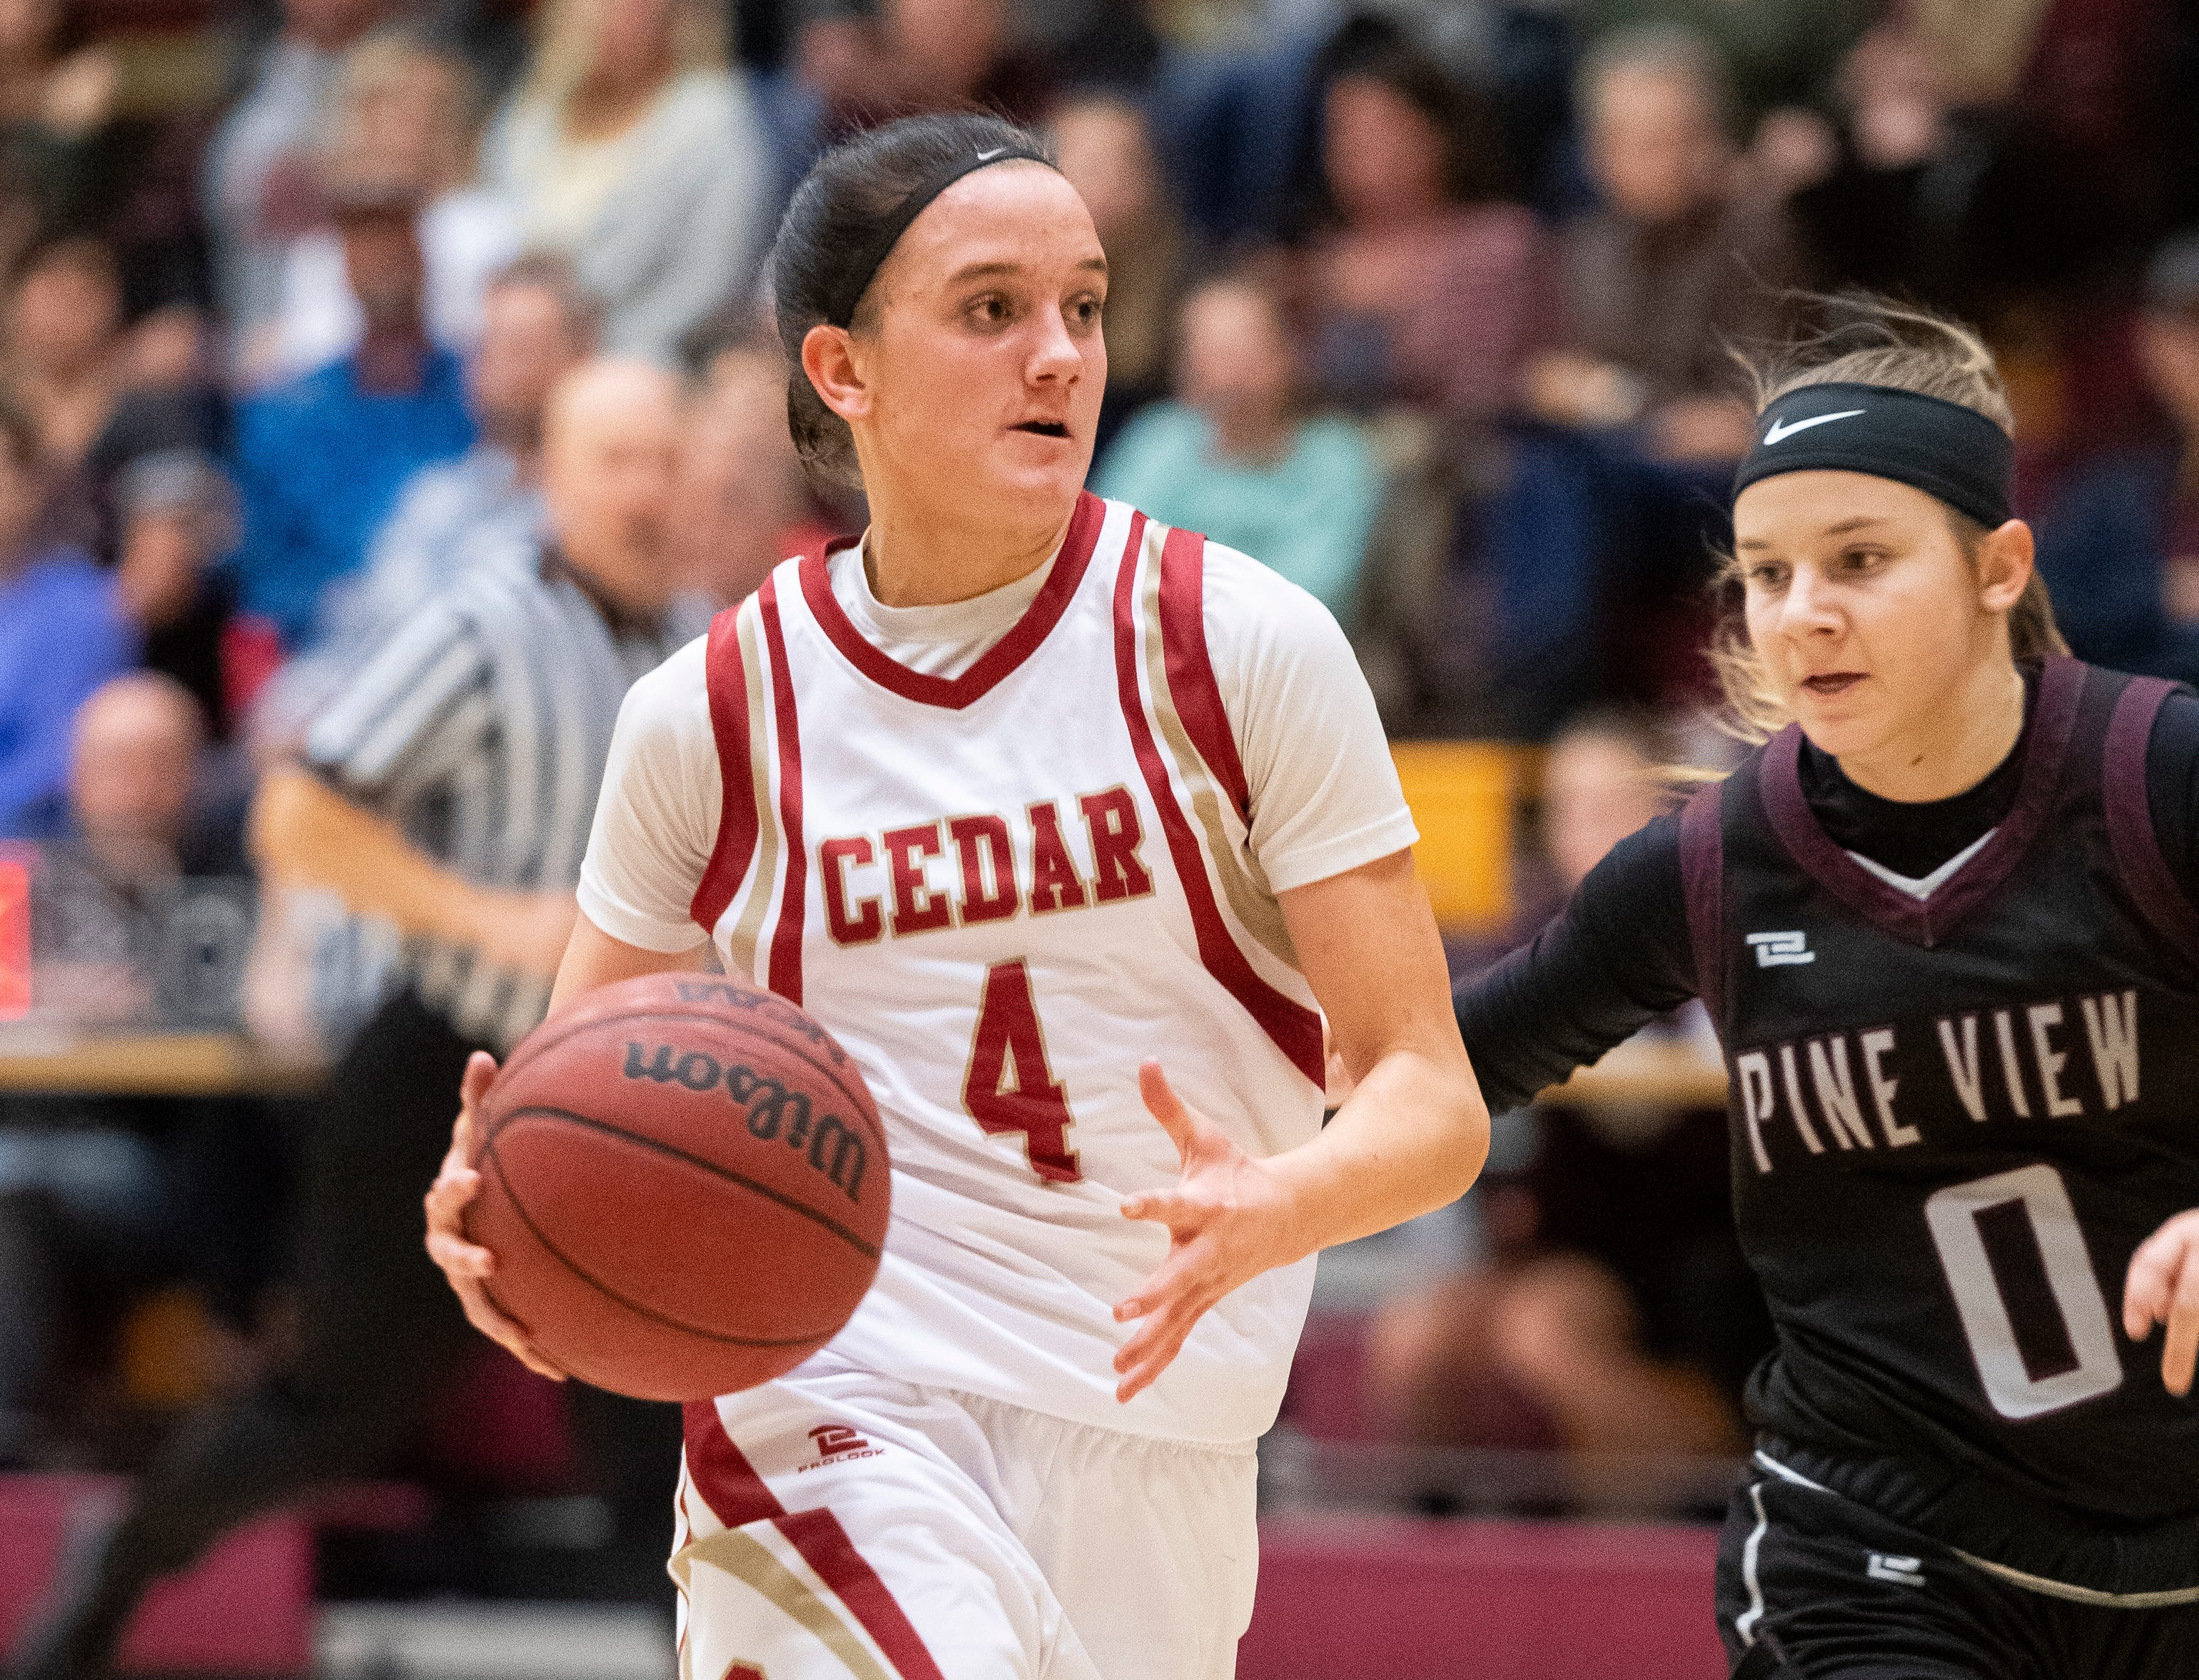 Cedar High School sophomore Logann Laws (4) moves the ball against Pine View at CHS Tuesday, January 8, 2019. Cedar remains undefeated with a 63-40 win over the Panthers.